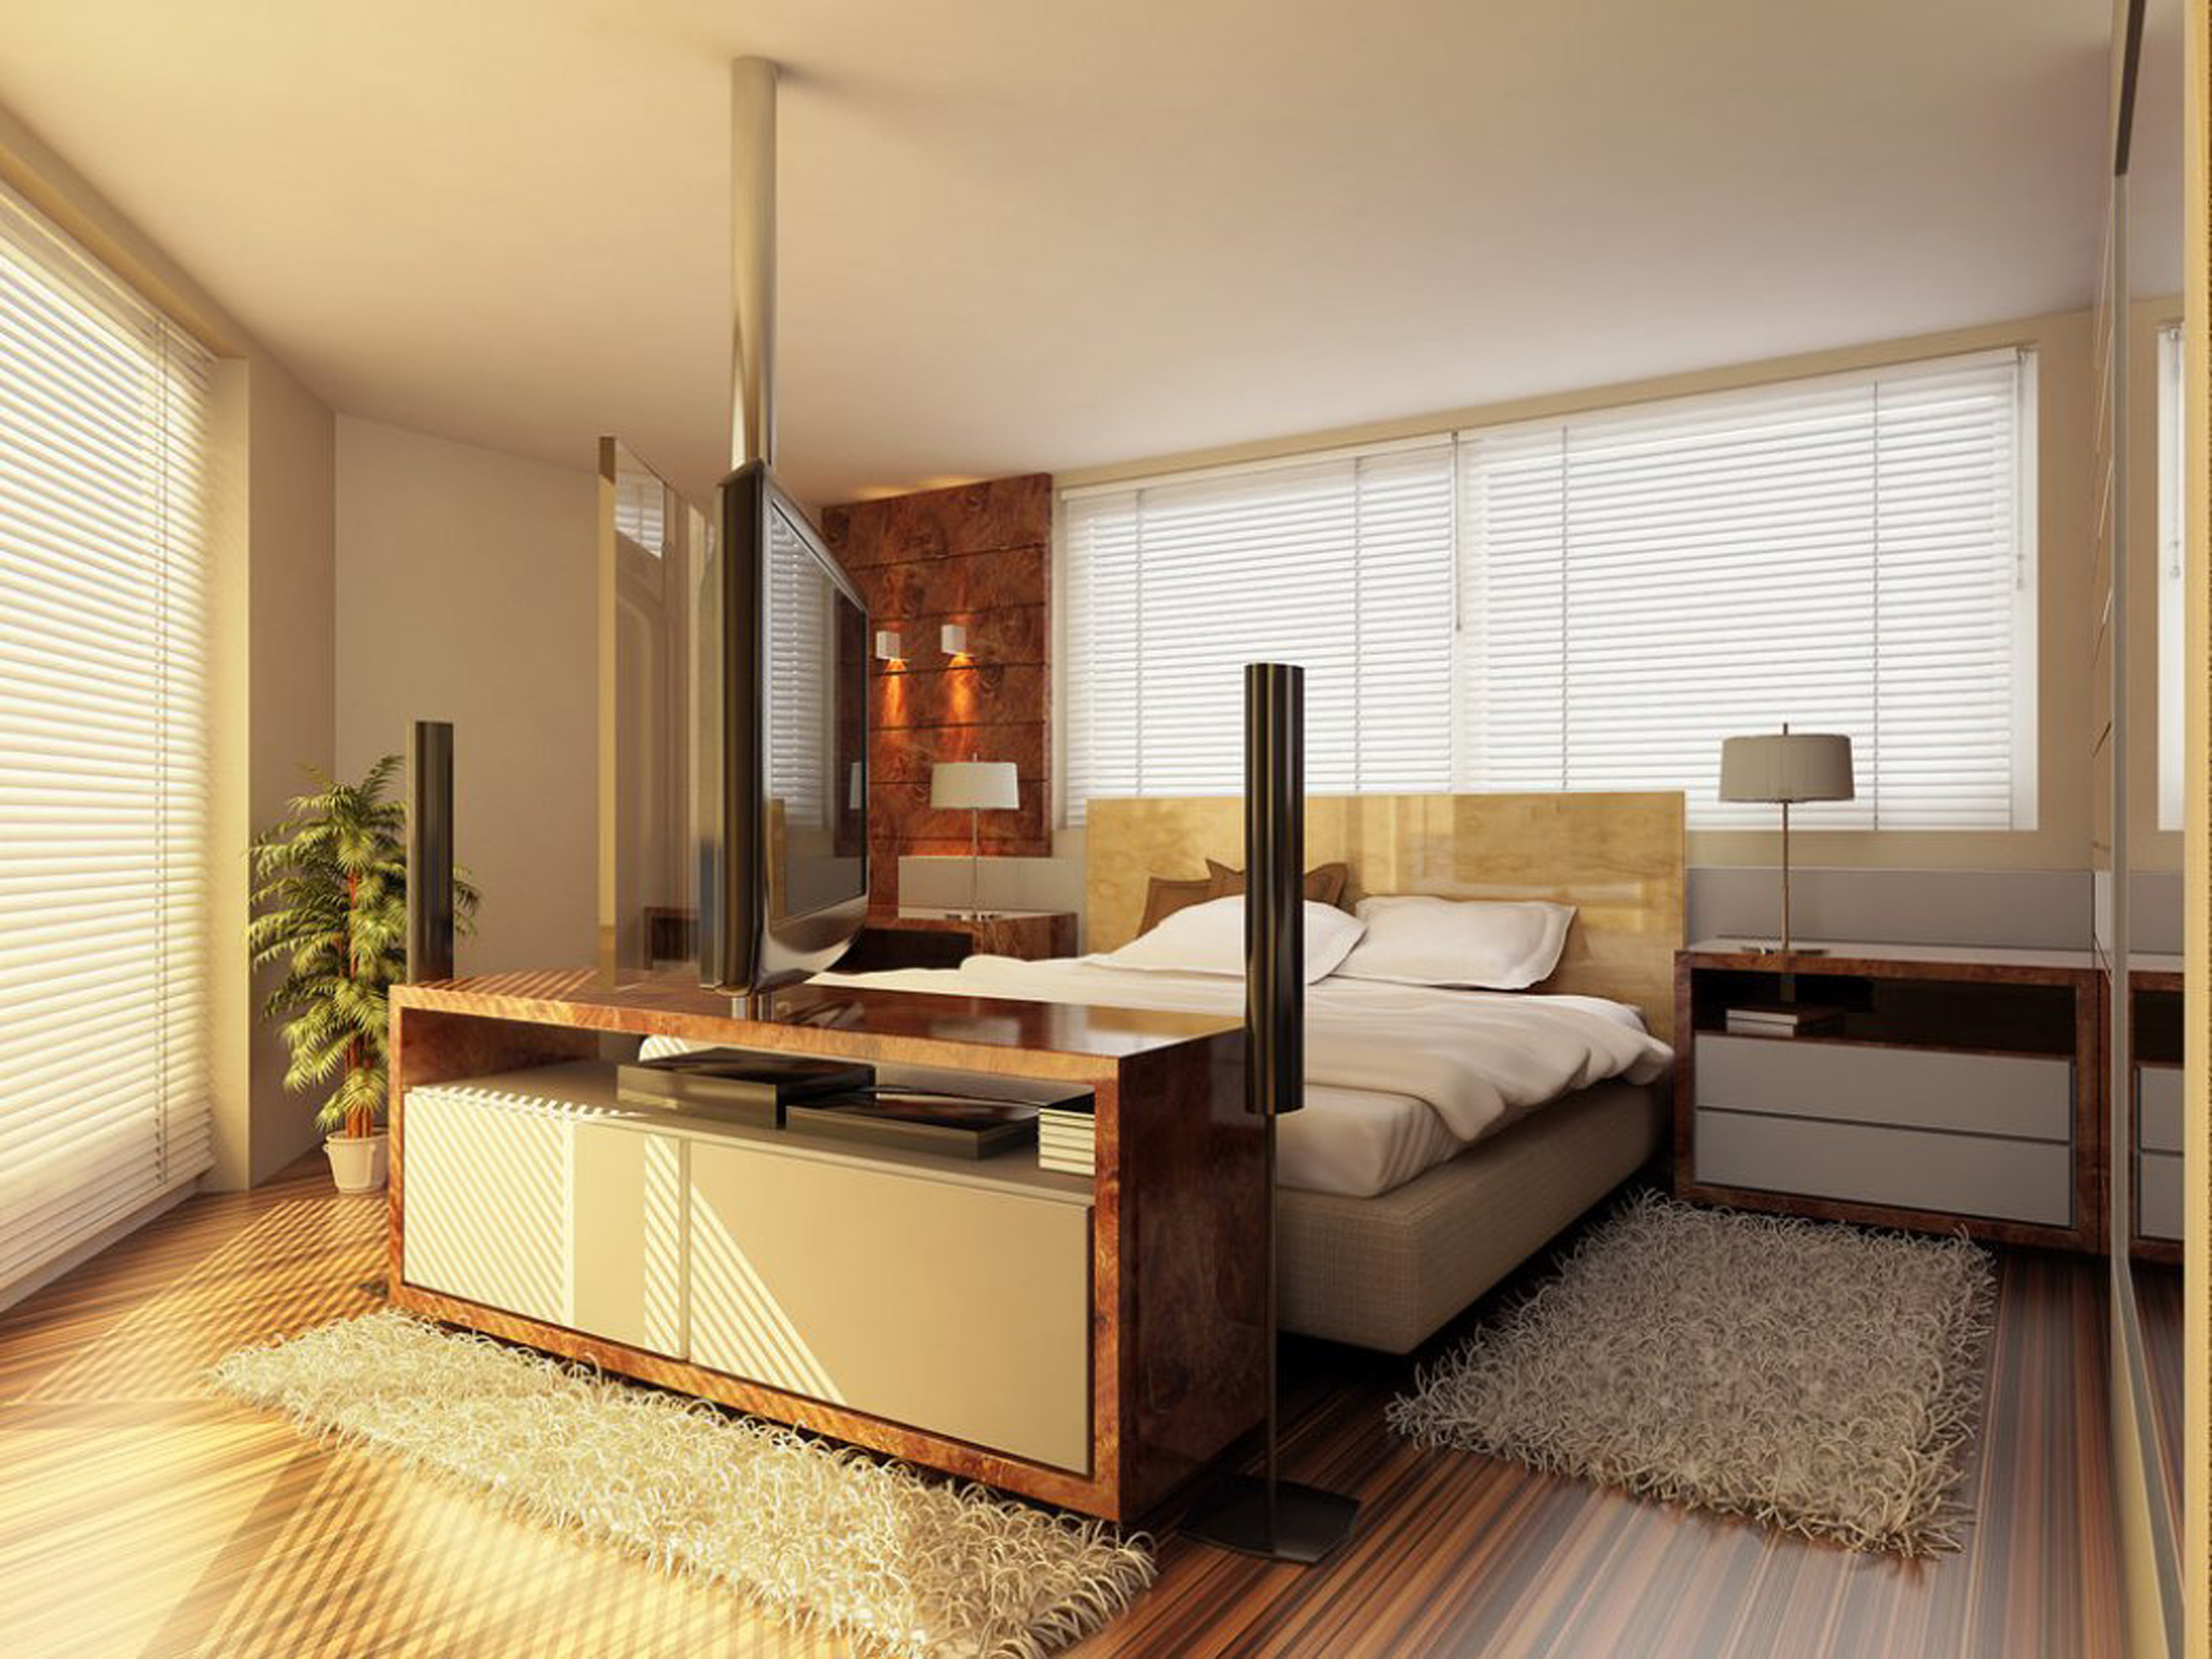 Luxury Modern Master Design Bedroom Idea With Brown Hardwood Floor Tile Light Brown Bed Frame With White Bed Sheet And White Desk Lamps Stunning Modern Master Design Bedroom Ideas (Image 105 of 123)